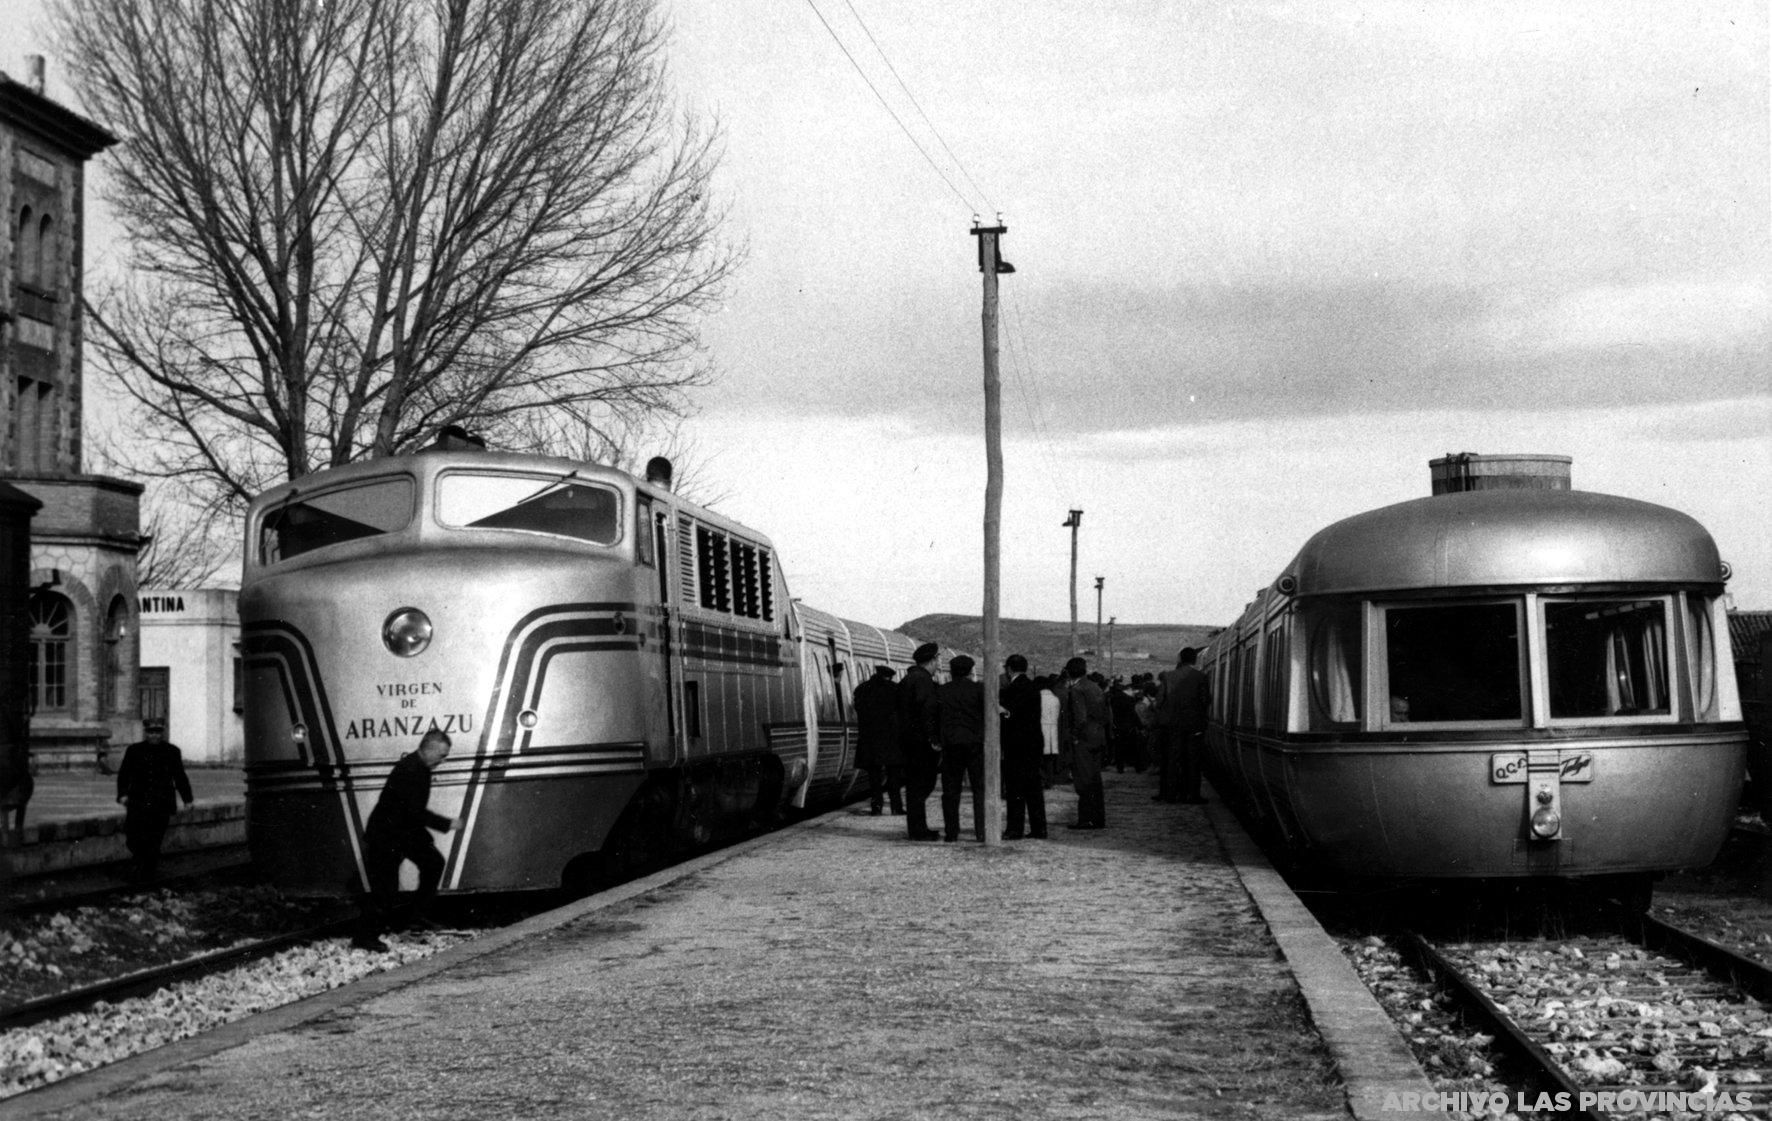 Spanish TALGO trainset. Similar trains were tested in the